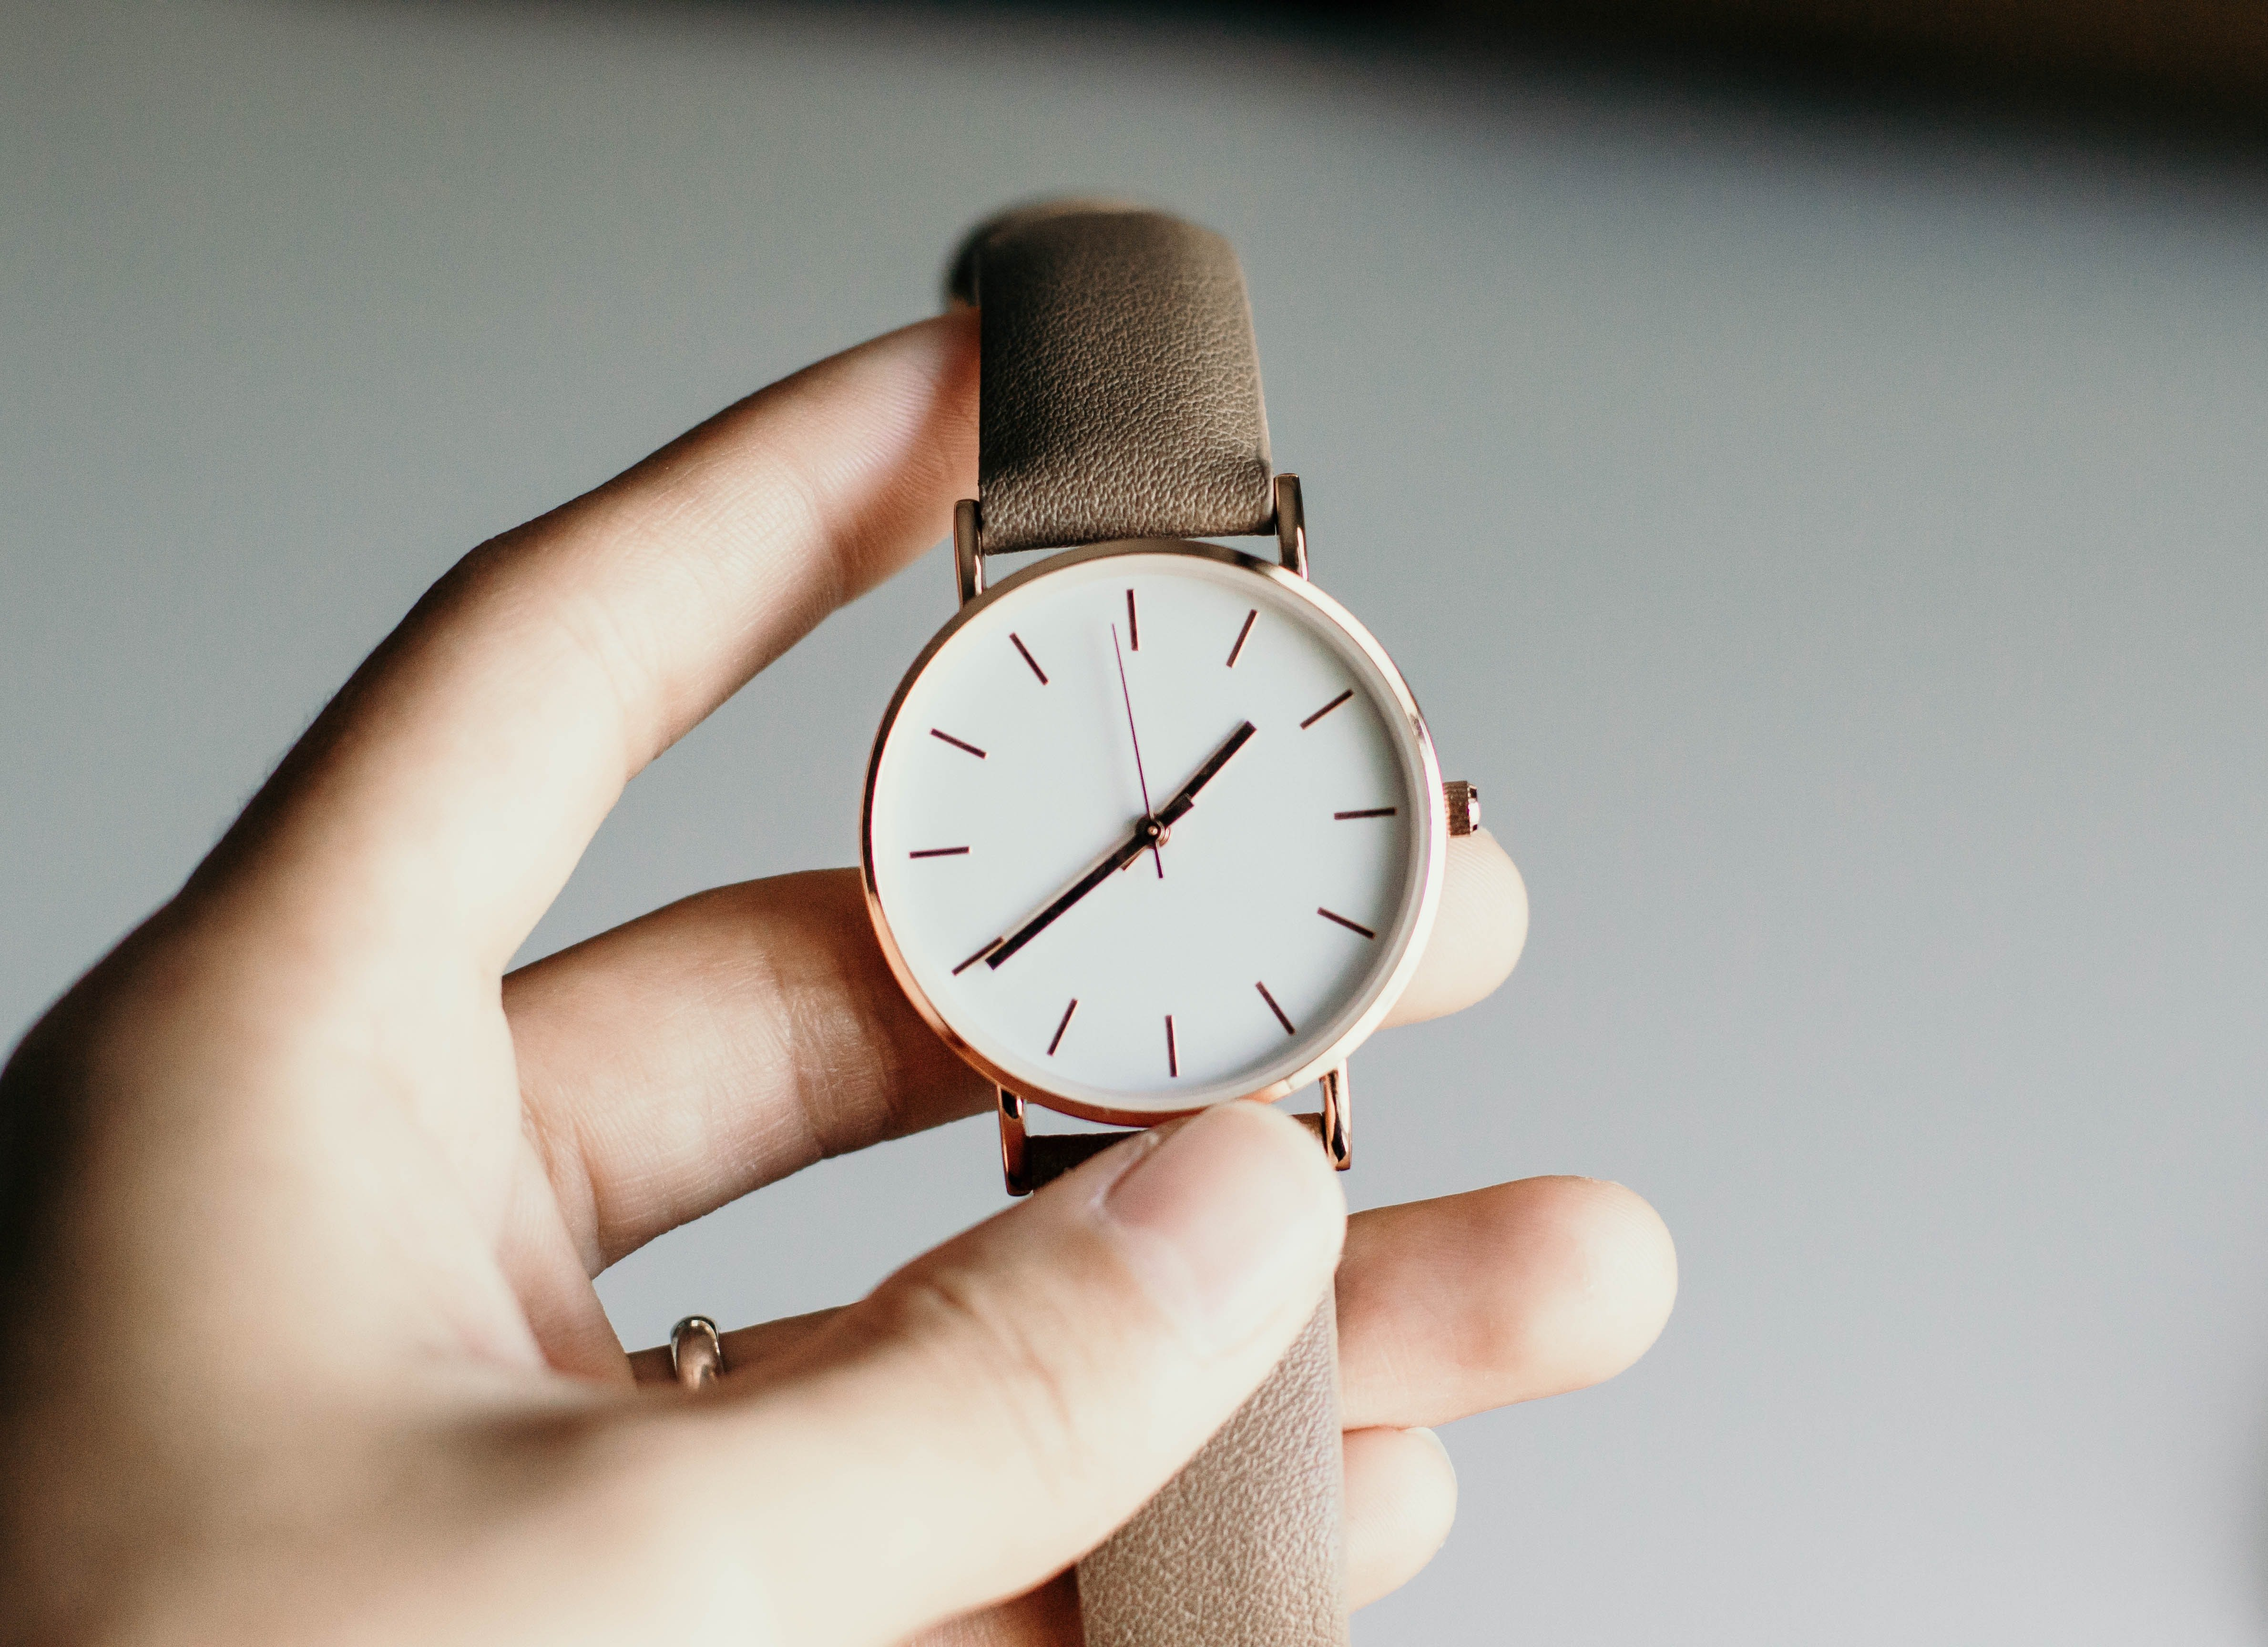 I looked at my watch and waited for Jared to arrive home | Source: Unsplash